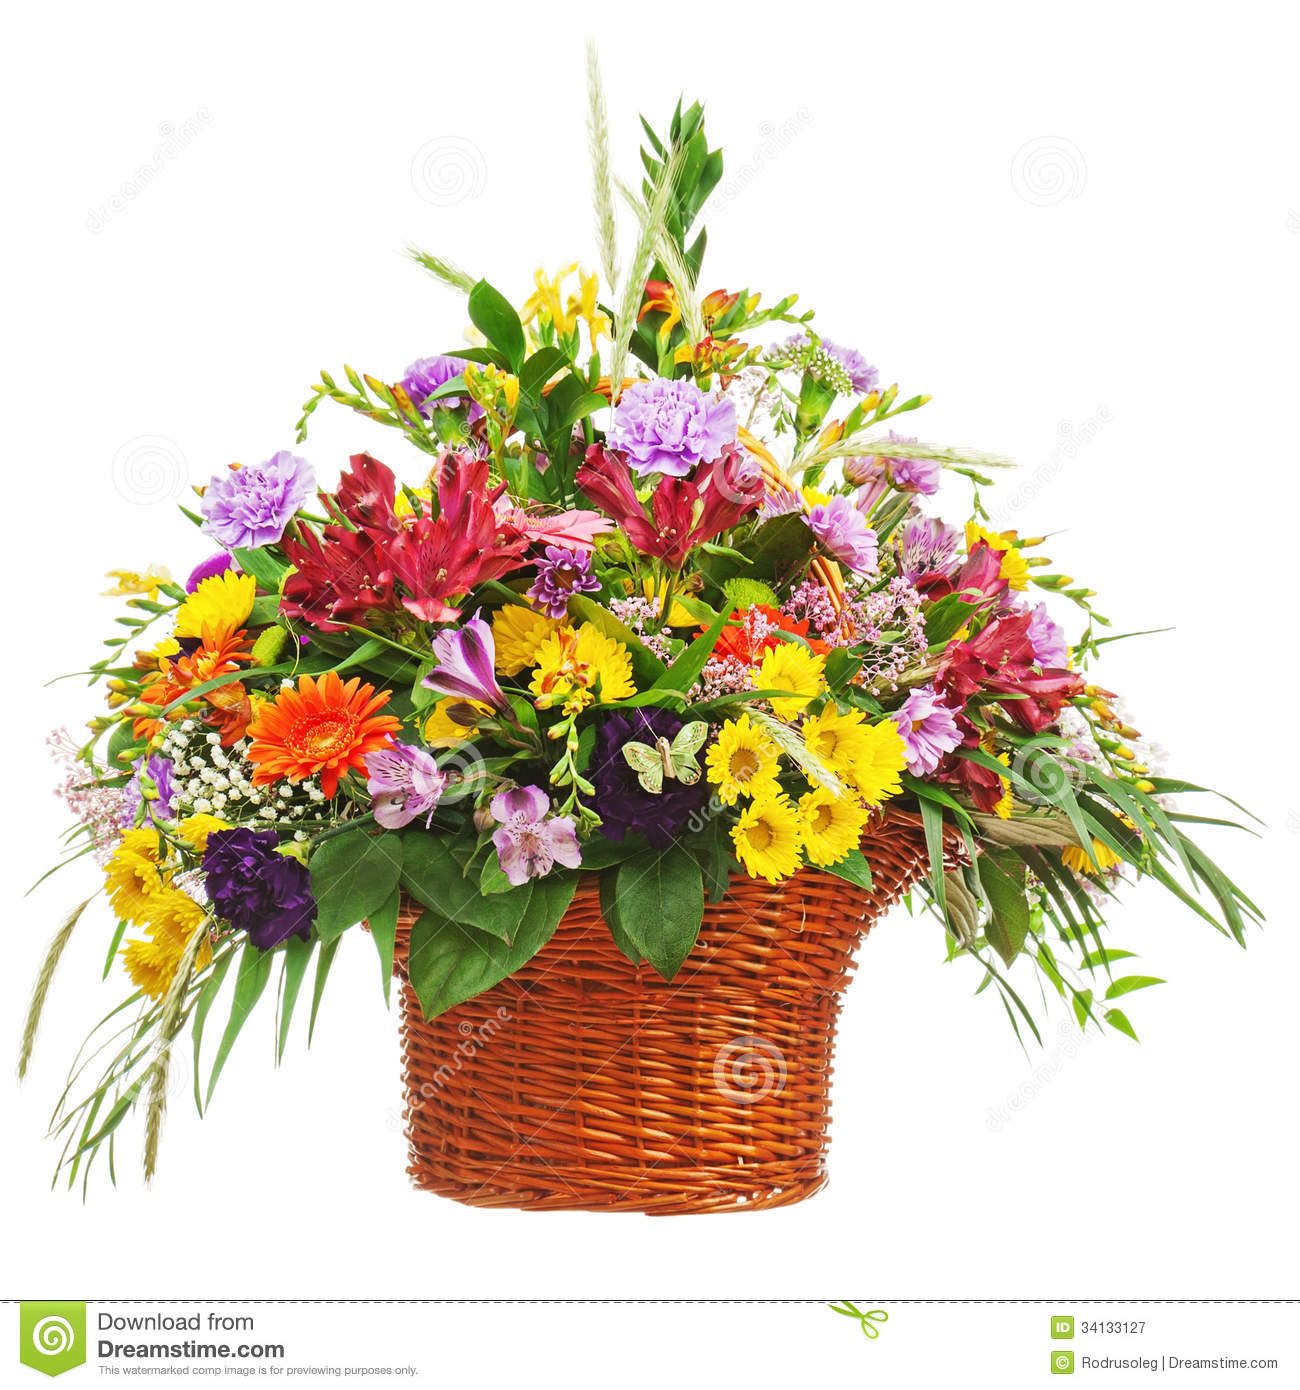 Flower Bouquet Arrangement Centerpiece In Wicker Basket